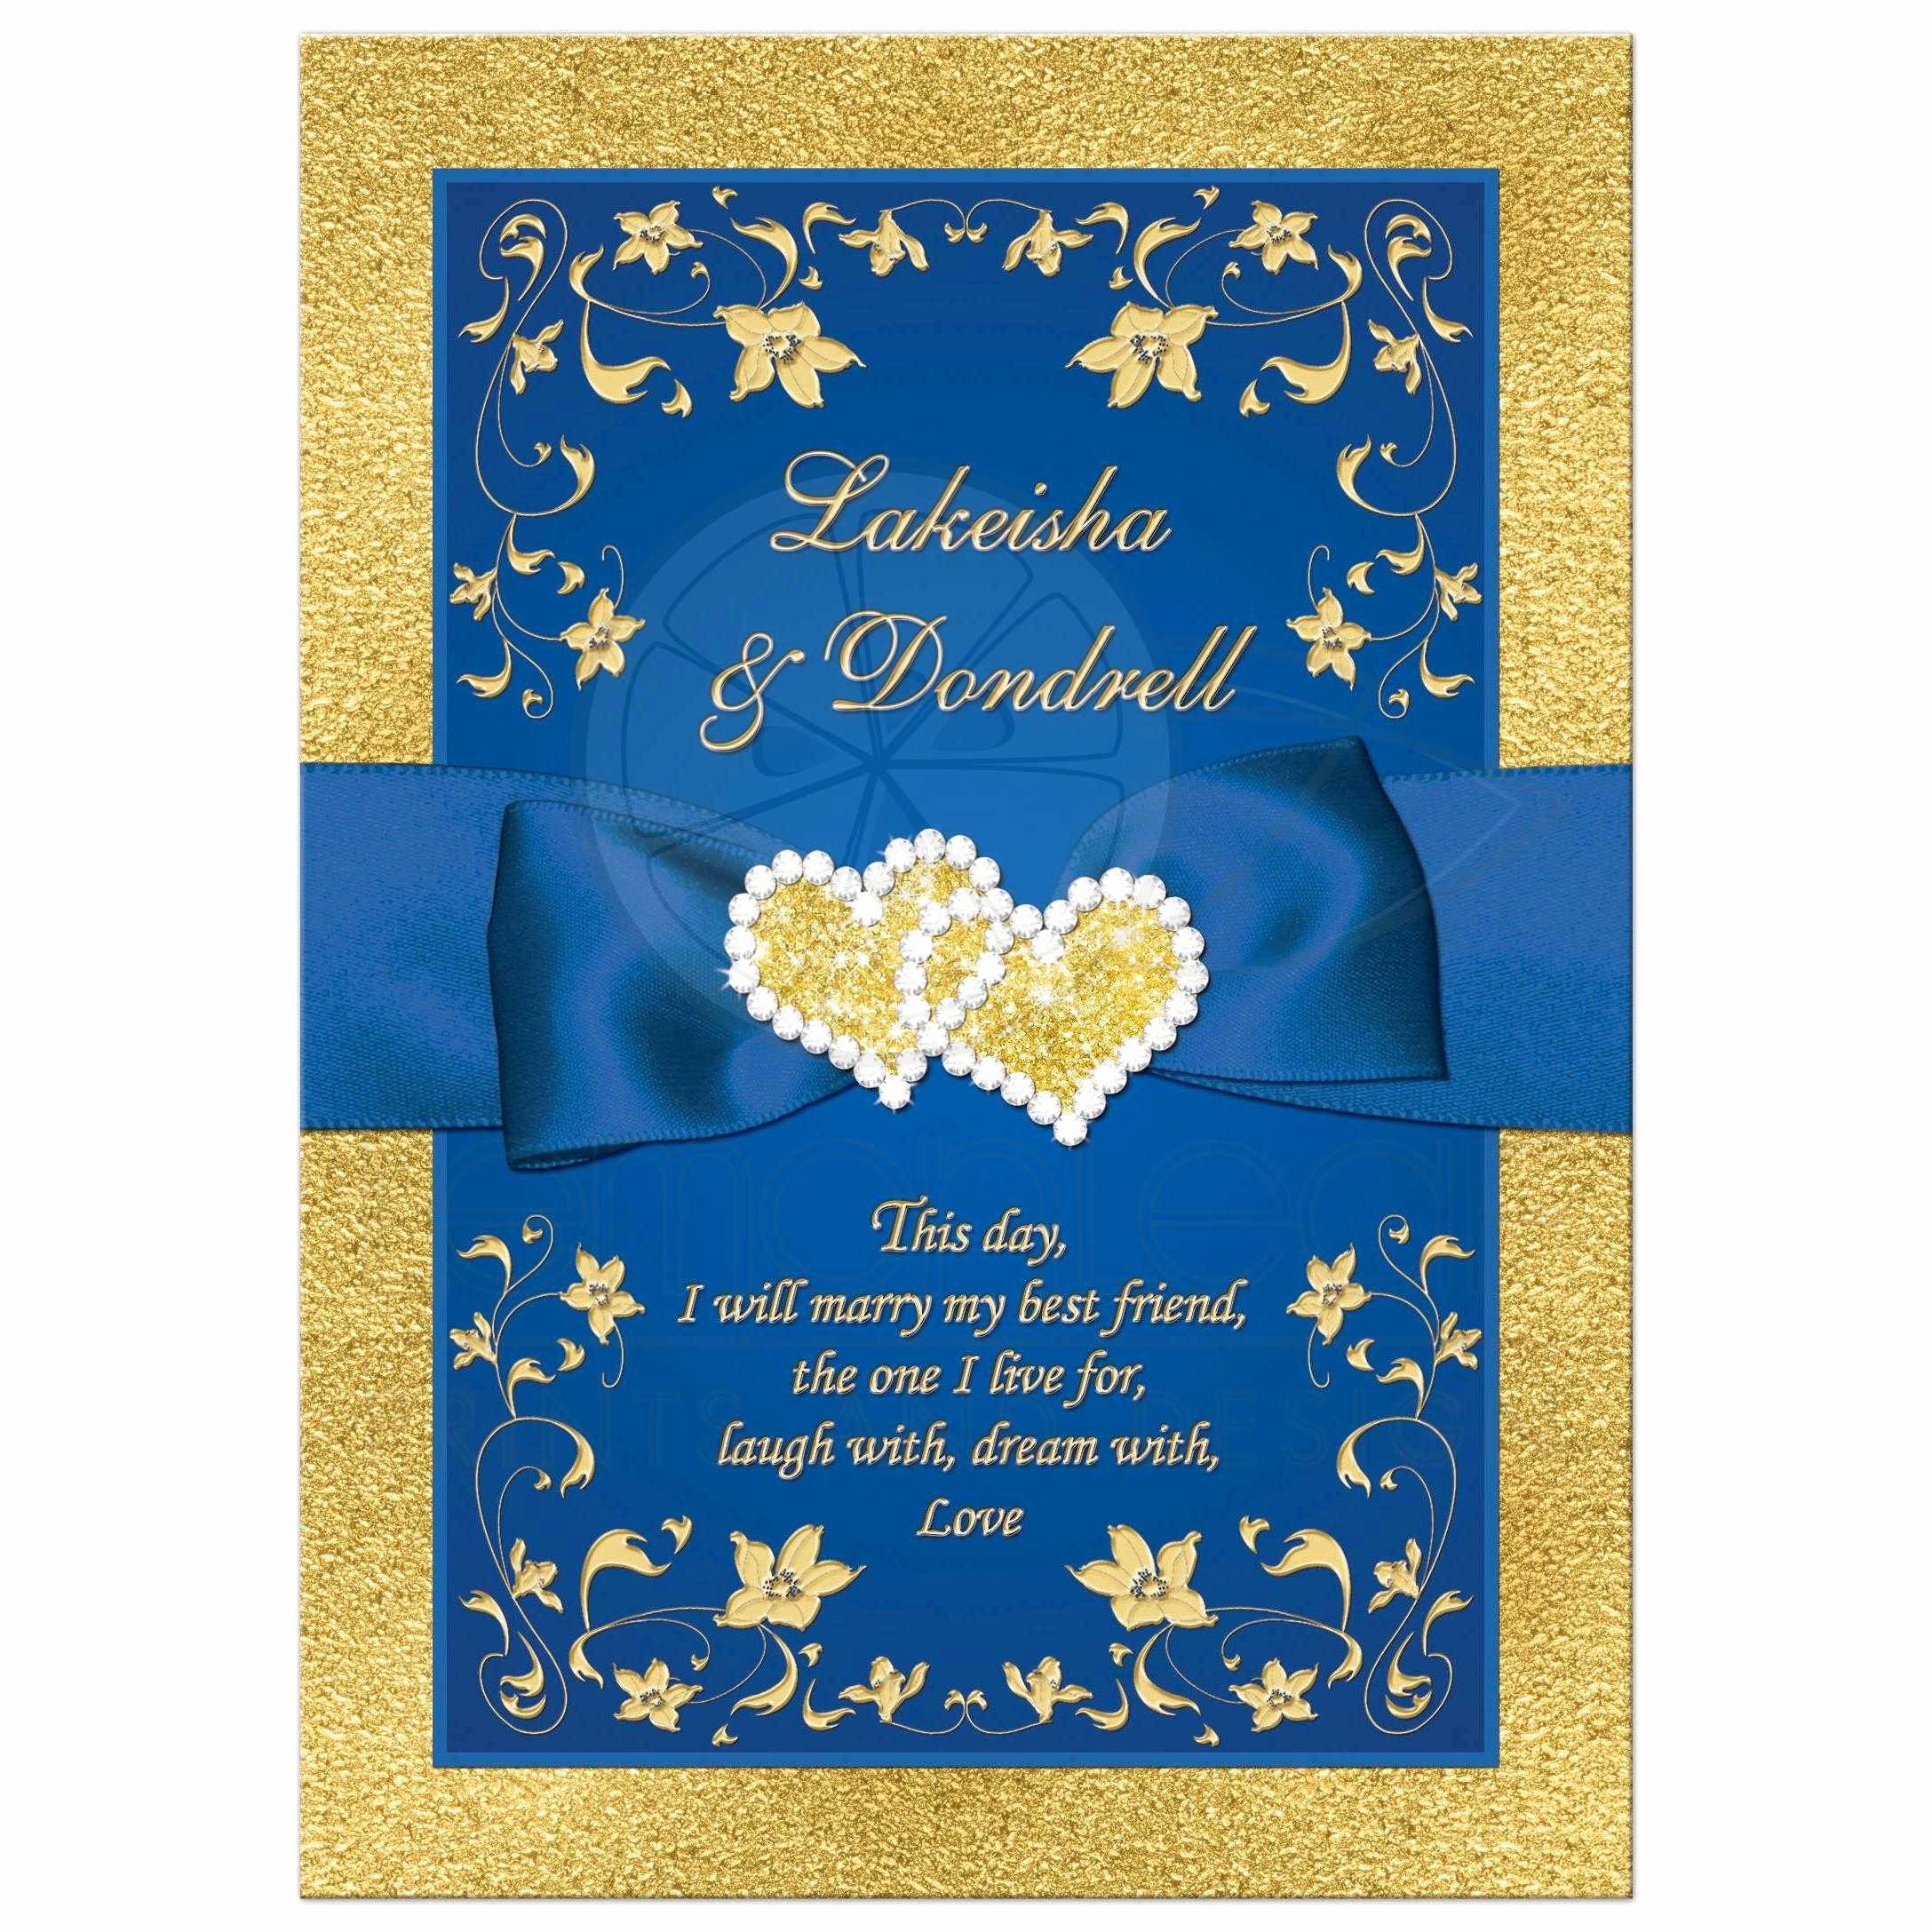 Blue and Gold Invitation Template Awesome Wedding Invitation Royal Blue Faux Gold Foil Floral